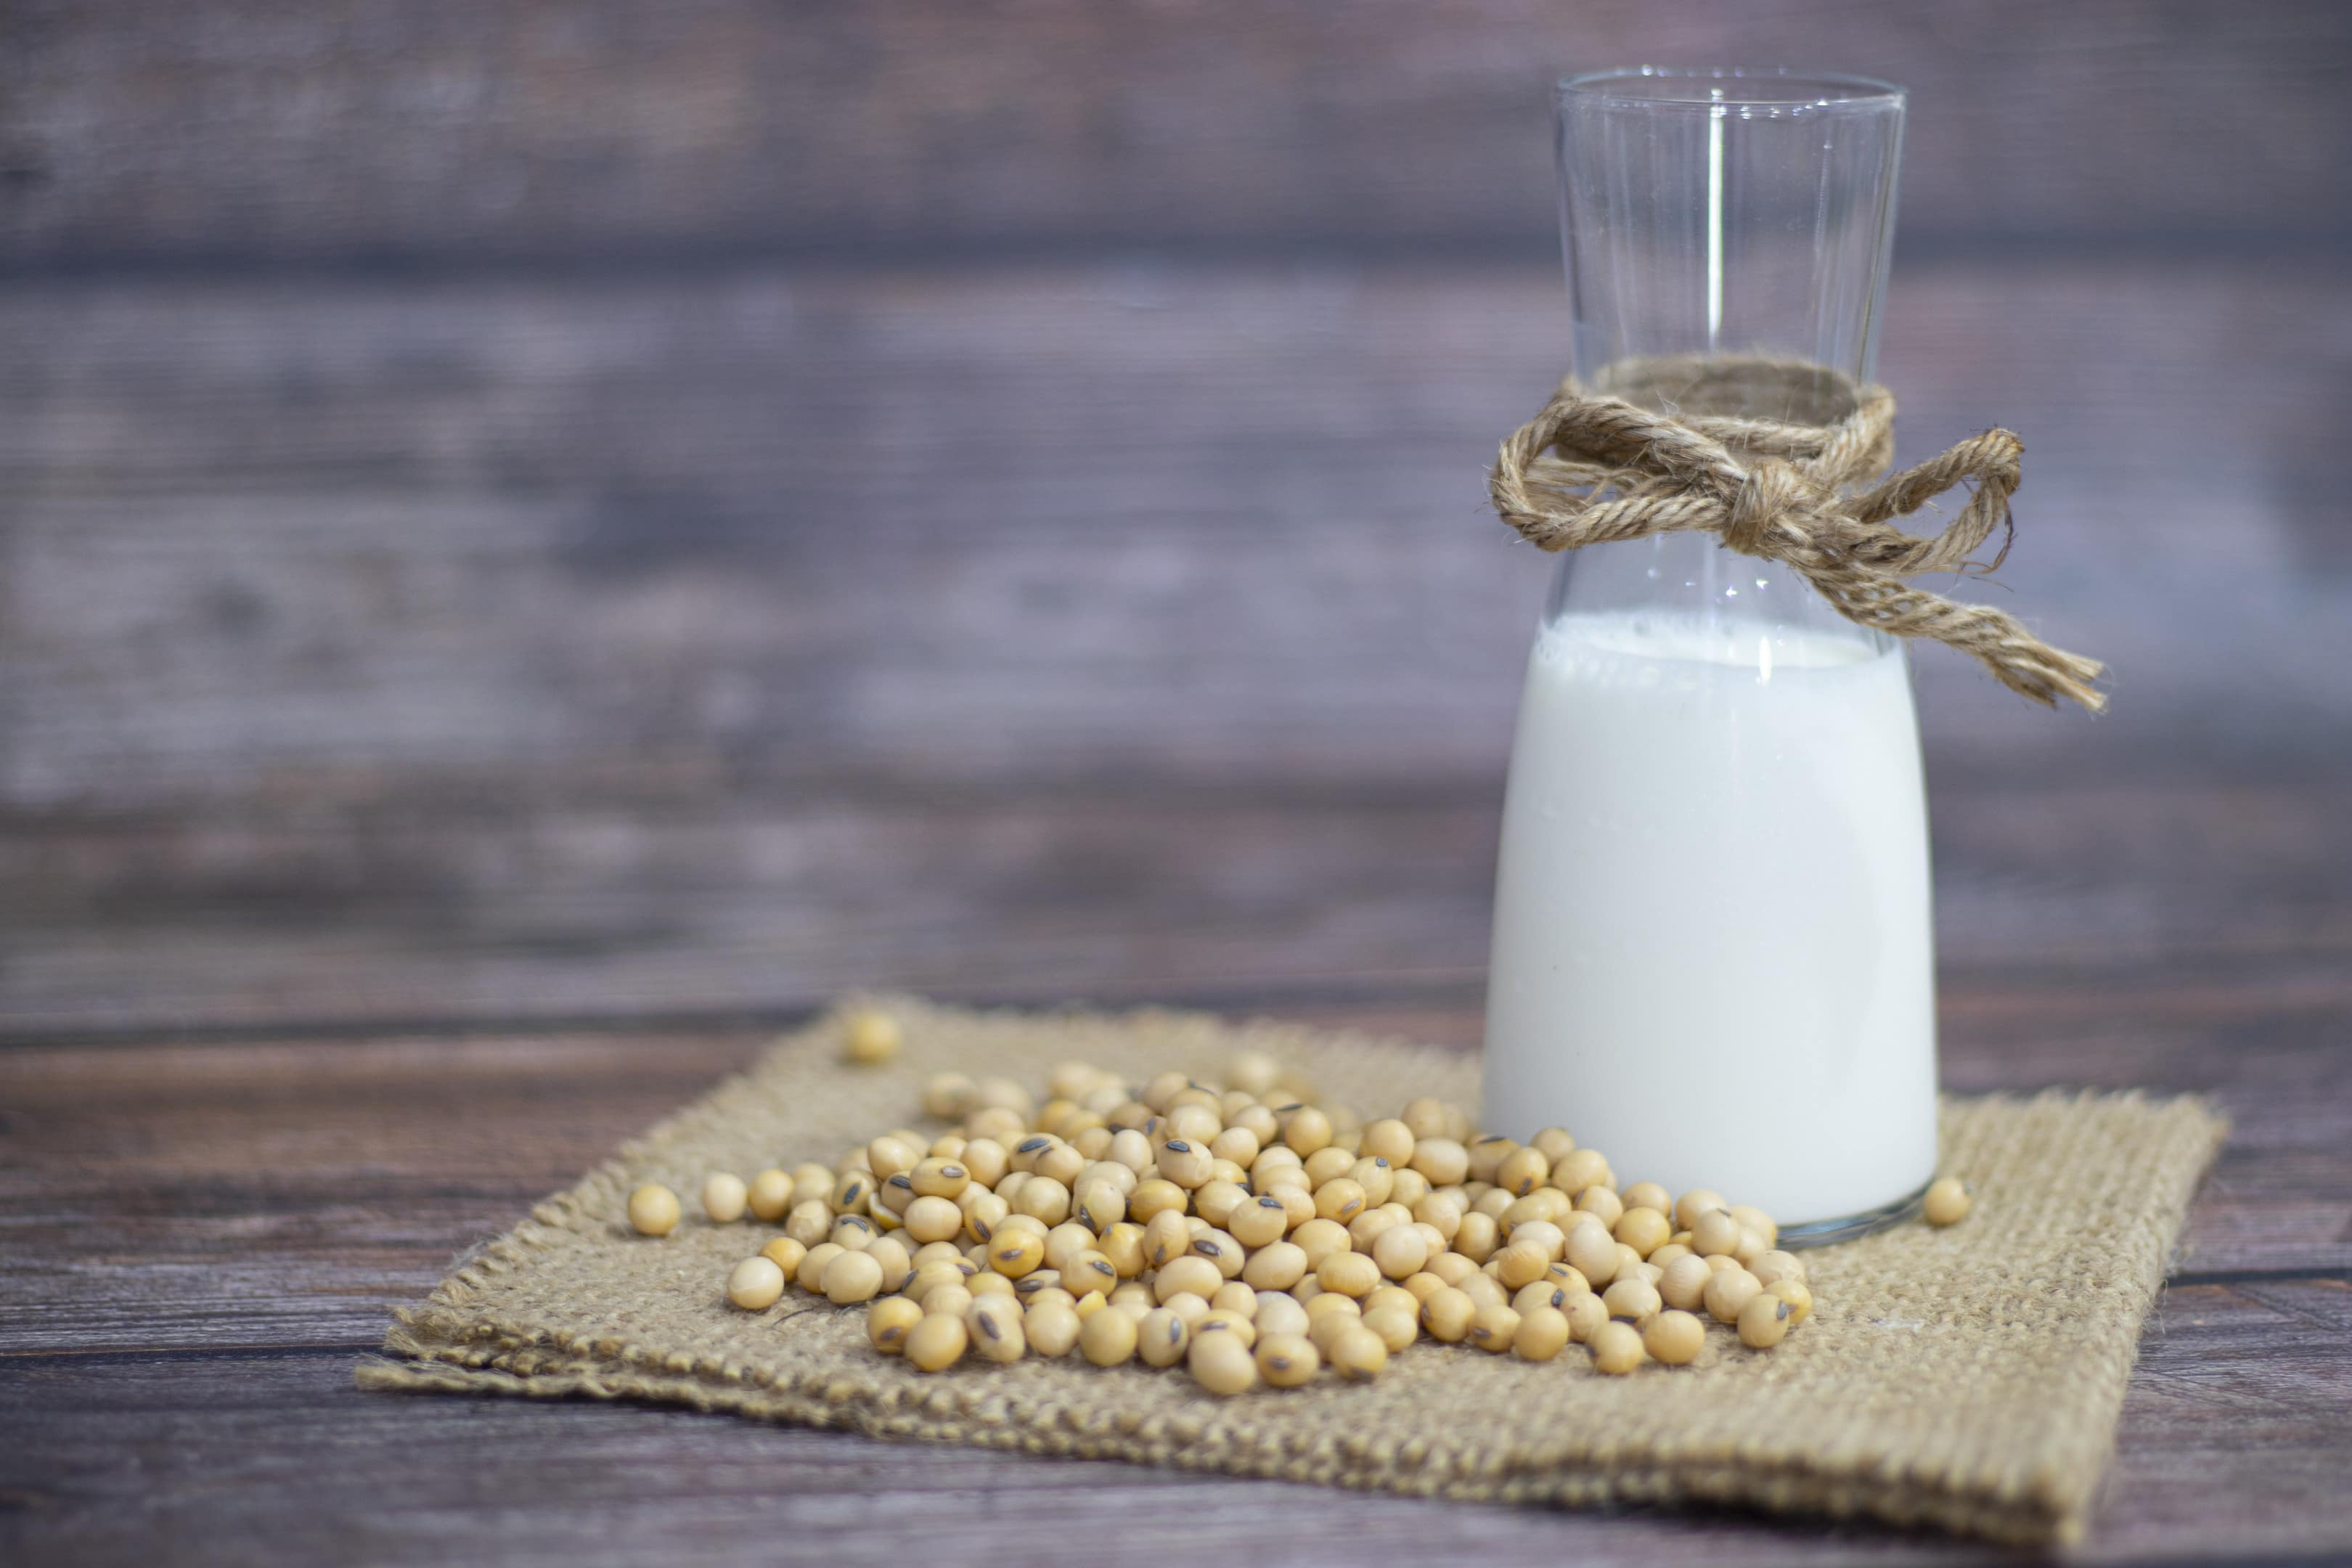 Soy products soy beans soy milk on wooden table